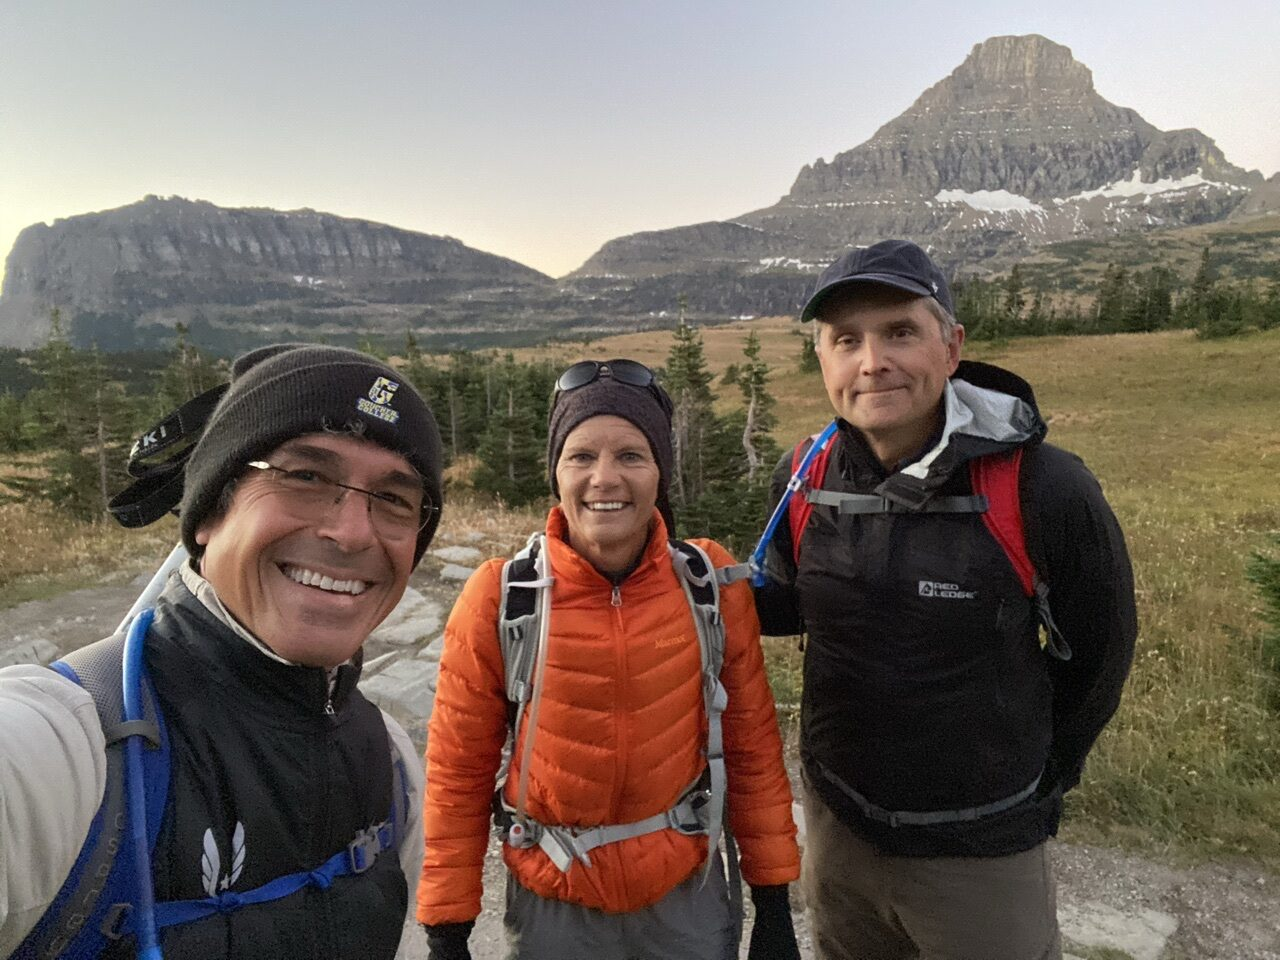 3 hikers in mountains